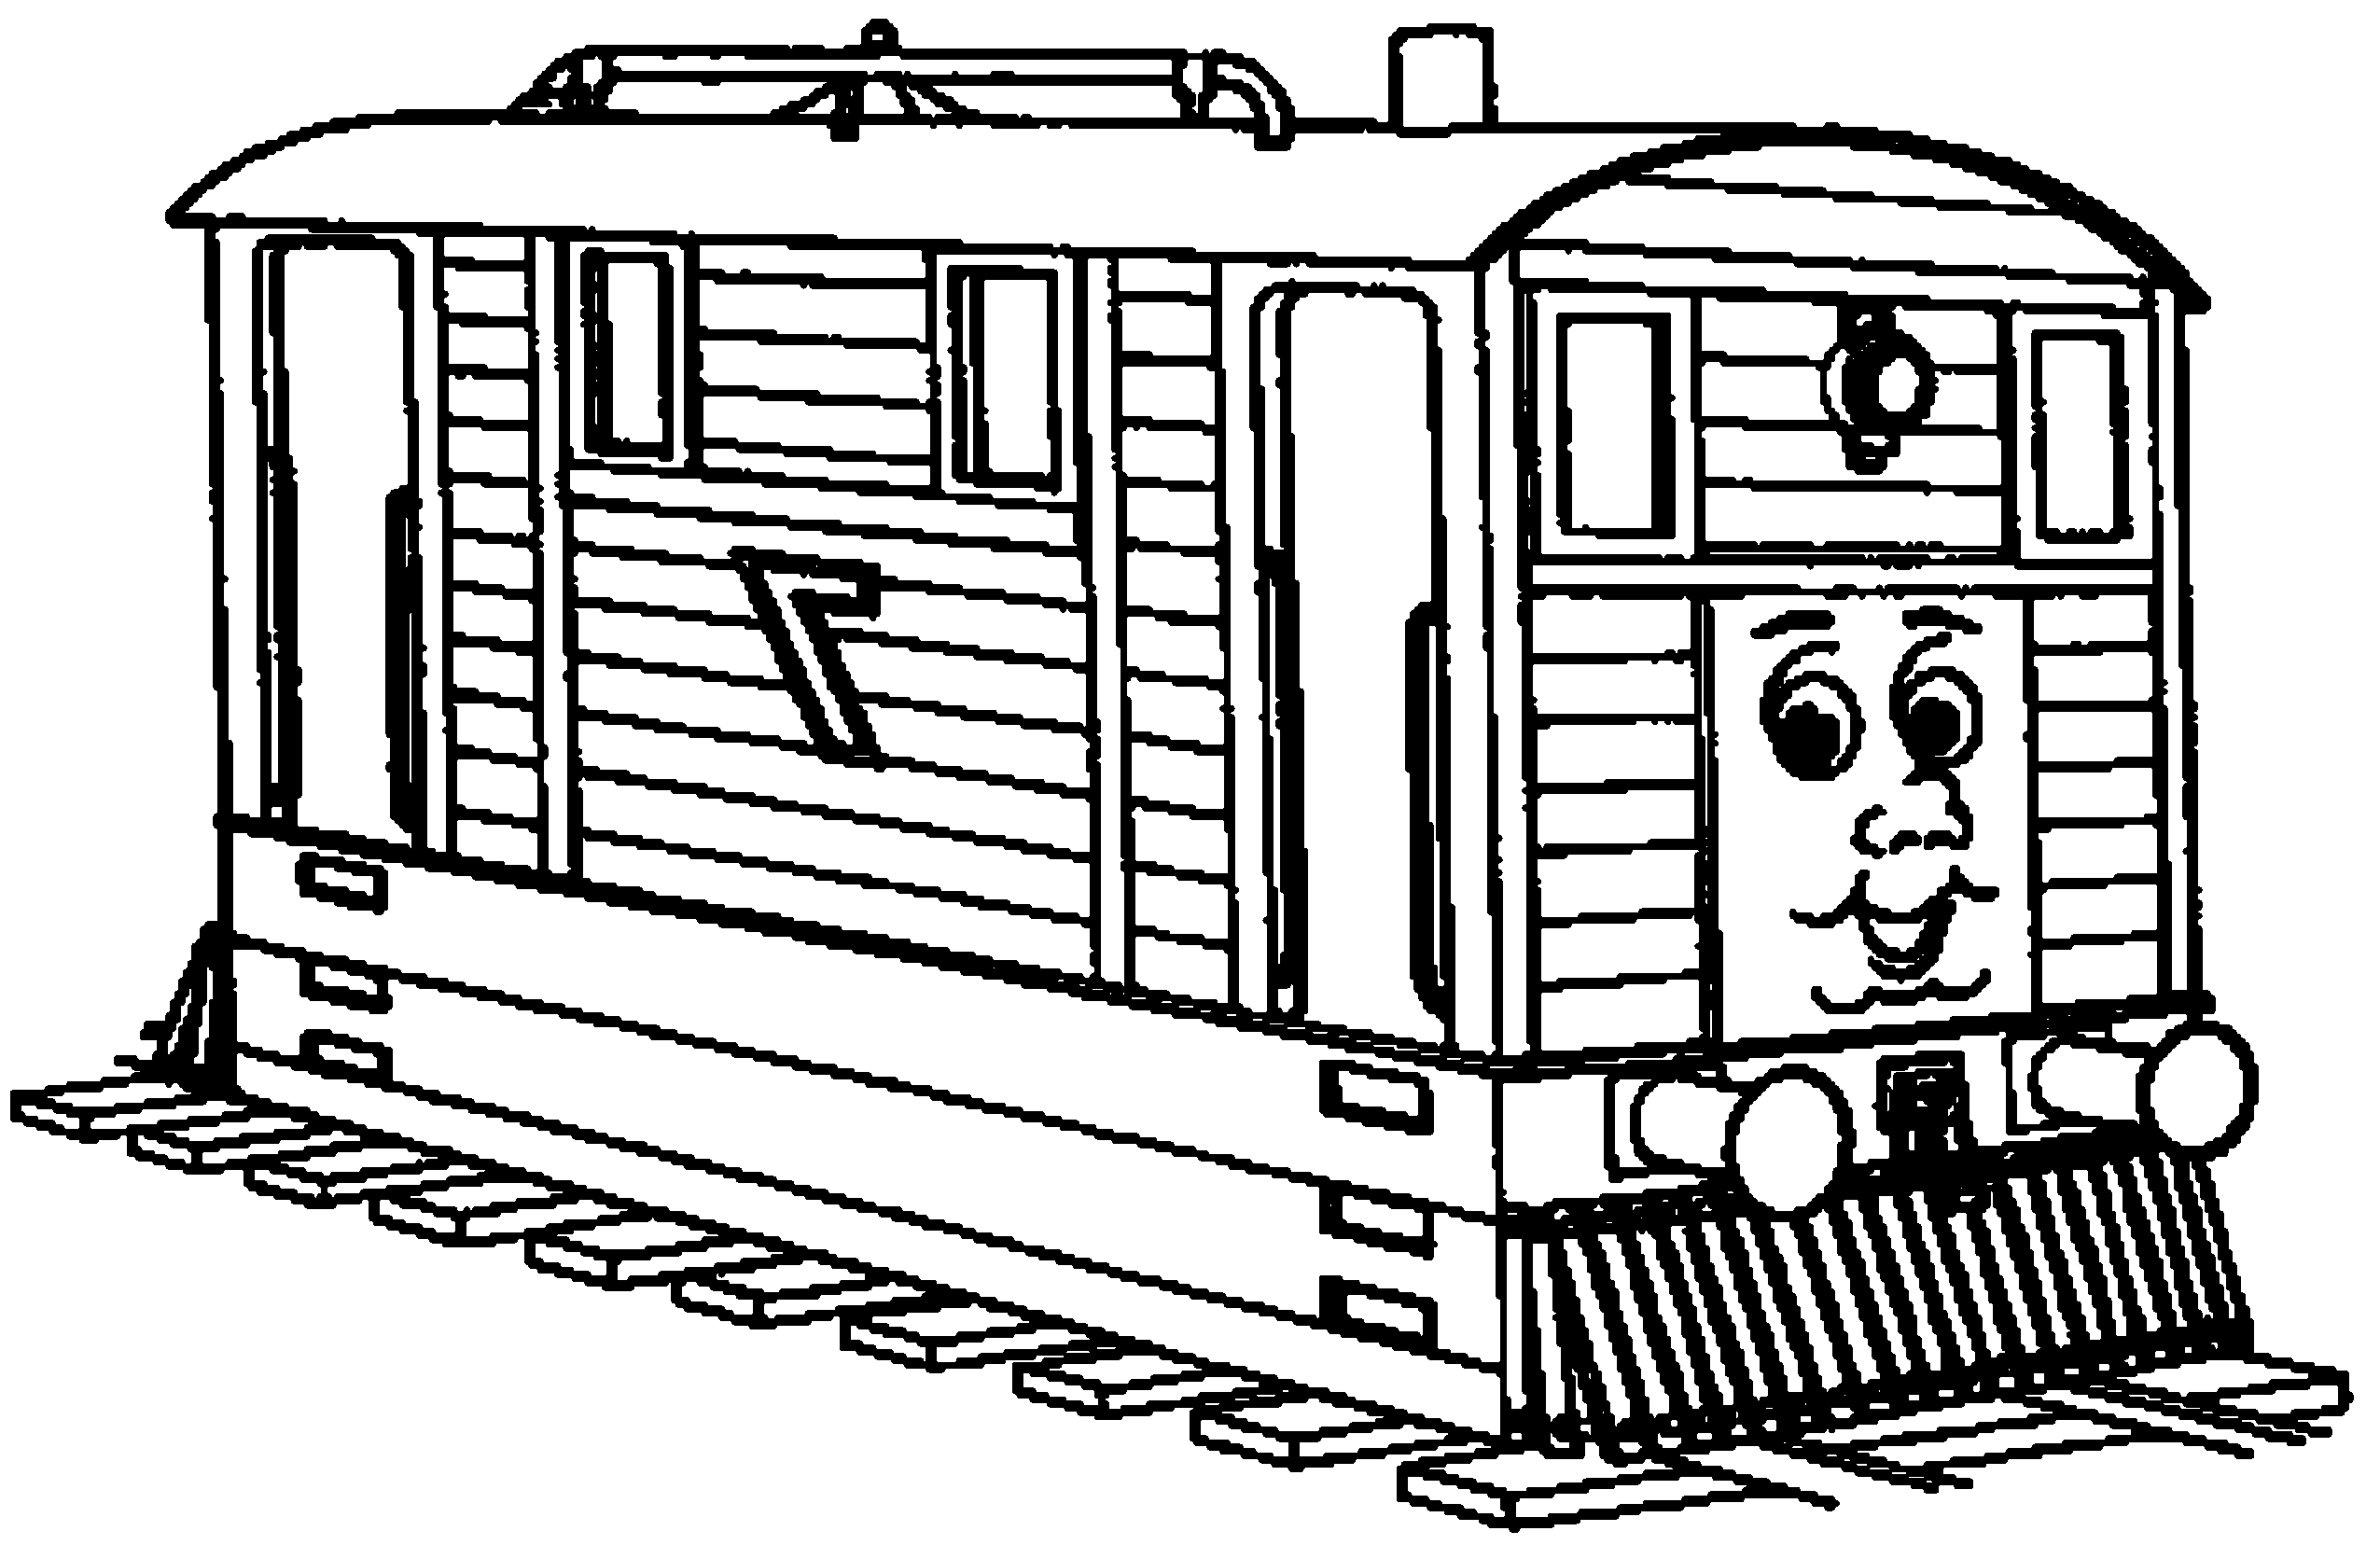 2551x1671 Awesome Trains Coloring Pages Design Printable Coloring Sheet